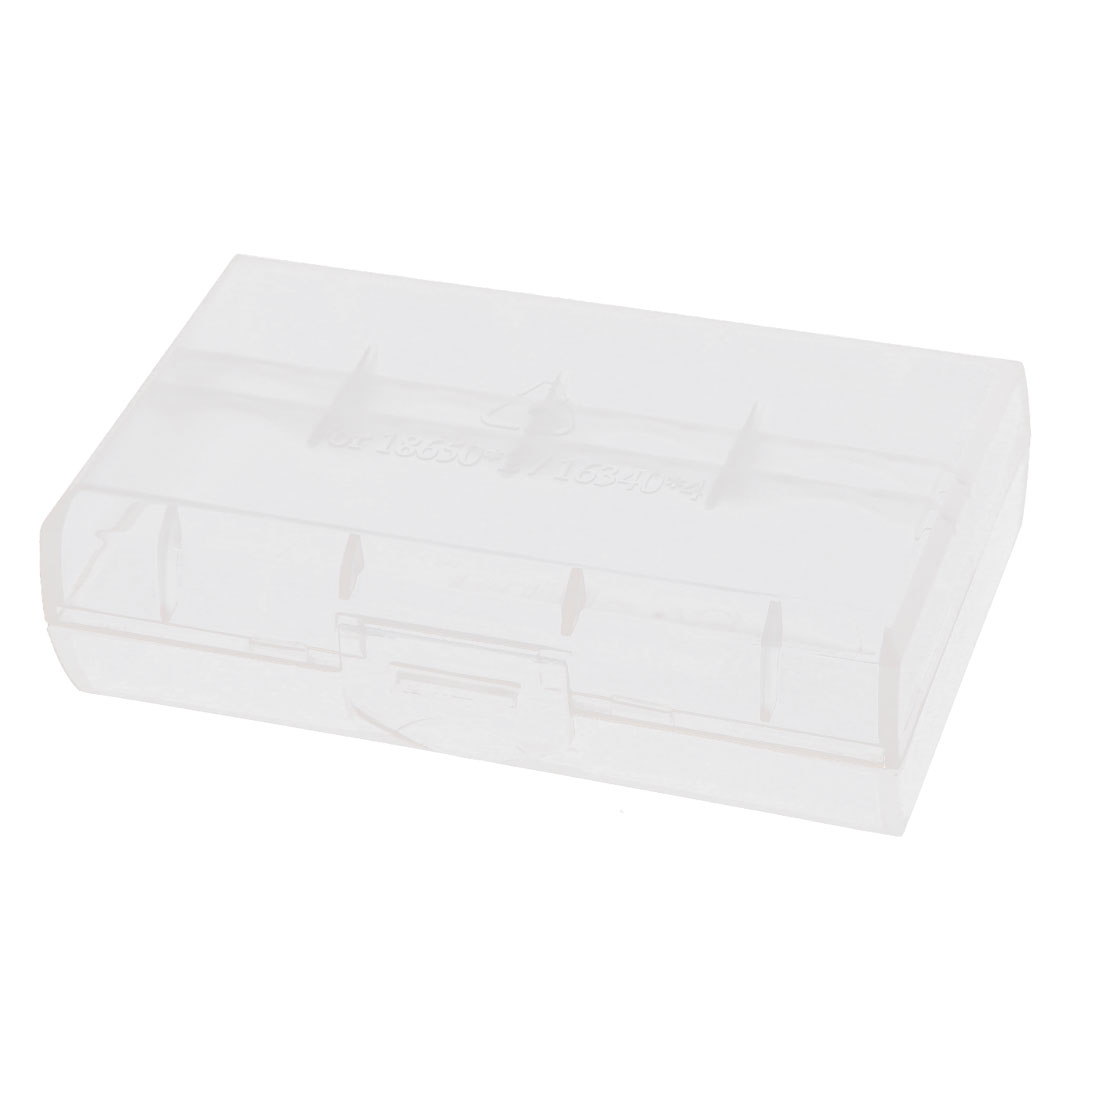 Clear Rectangle Storage Box Case Container for 2 x 18650 Batteries